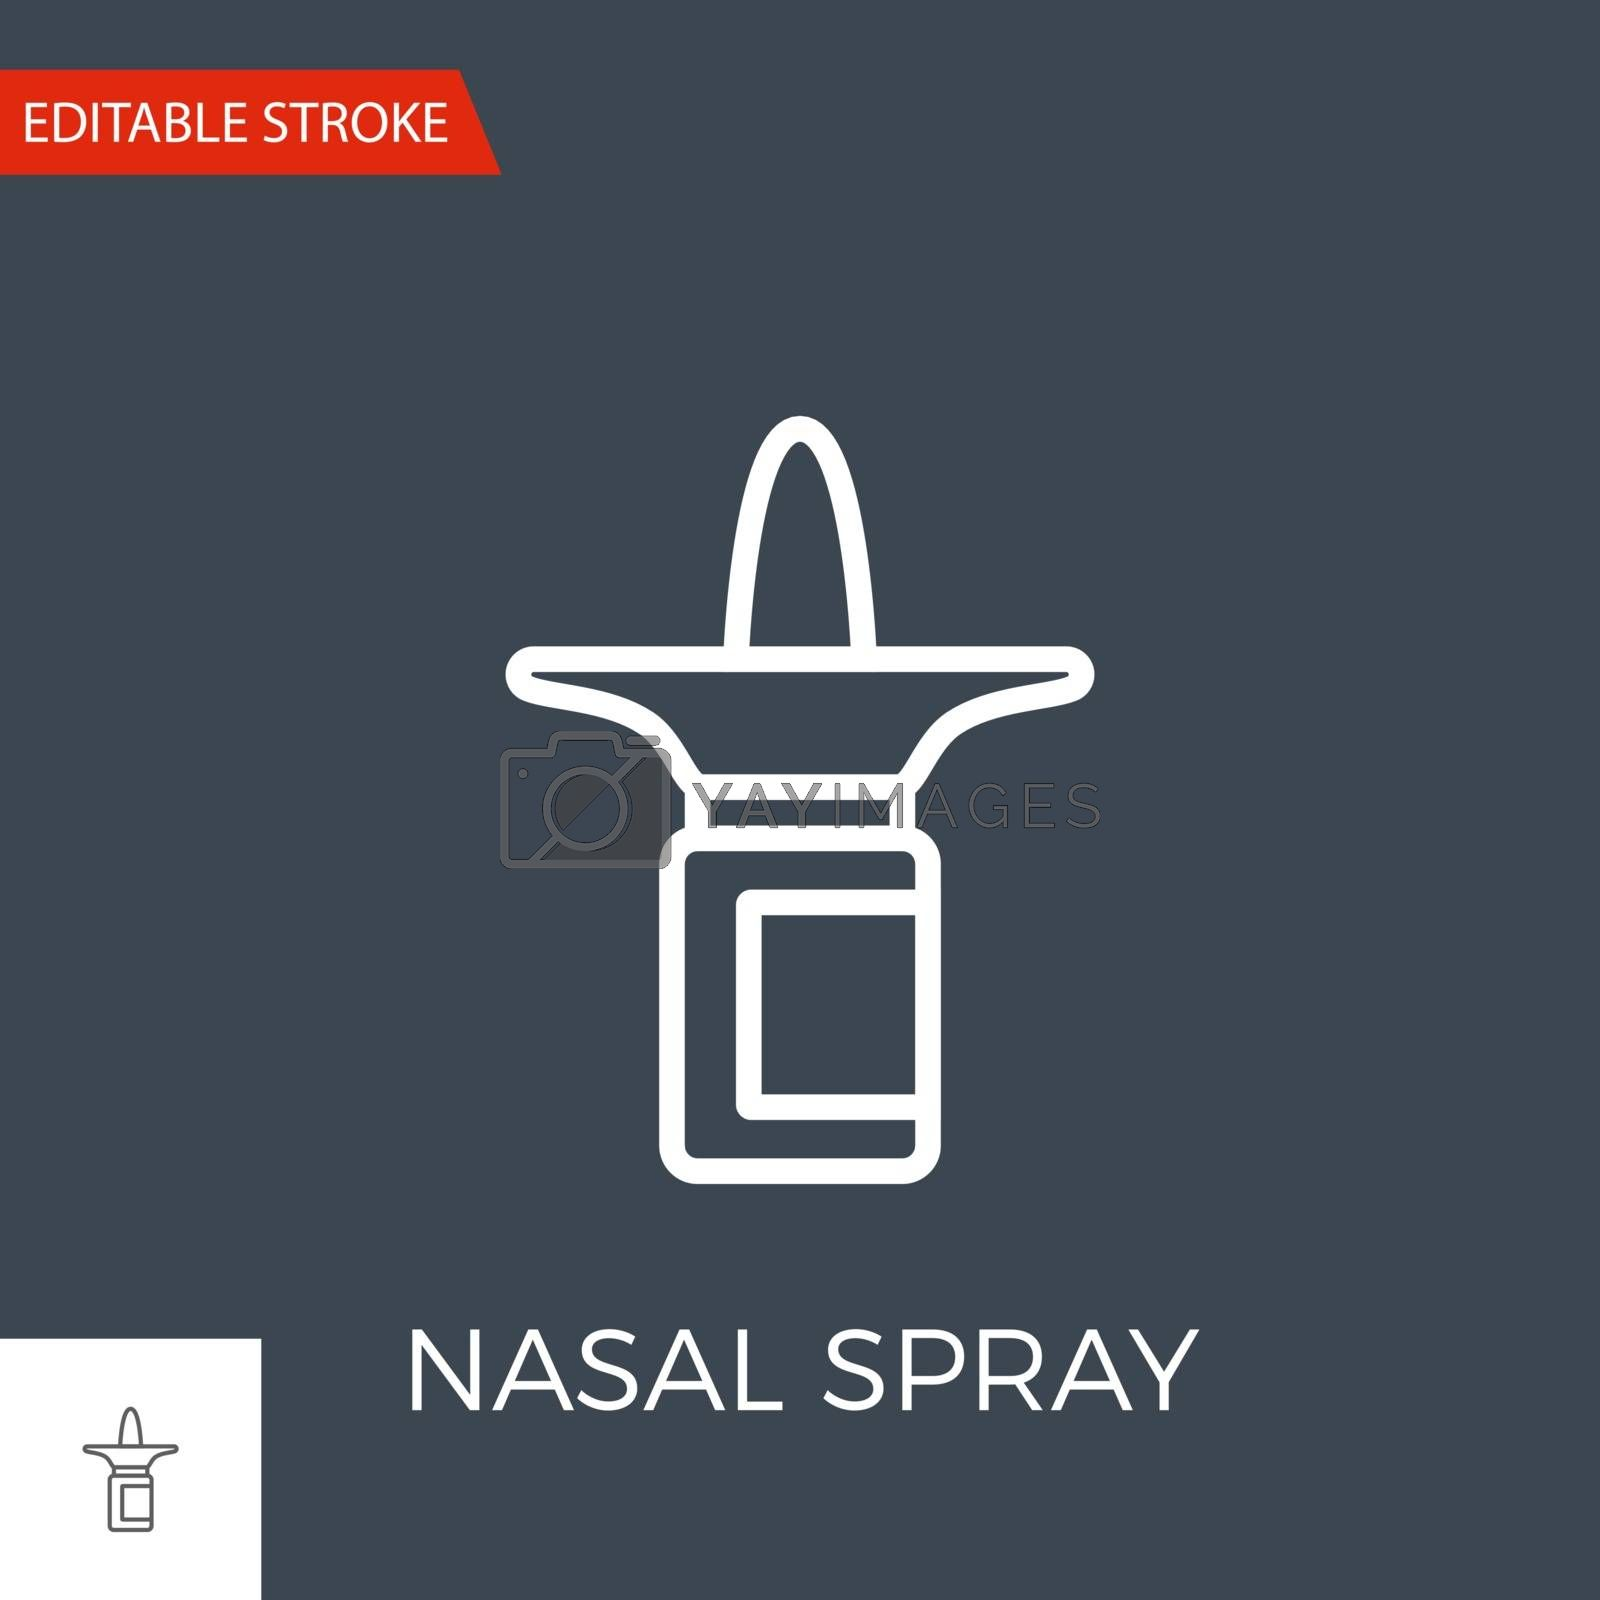 Nasal Spray Thin Line Vector Icon. Flat Icon Isolated on the Black Background. Editable Stroke EPS file. Vector illustration.